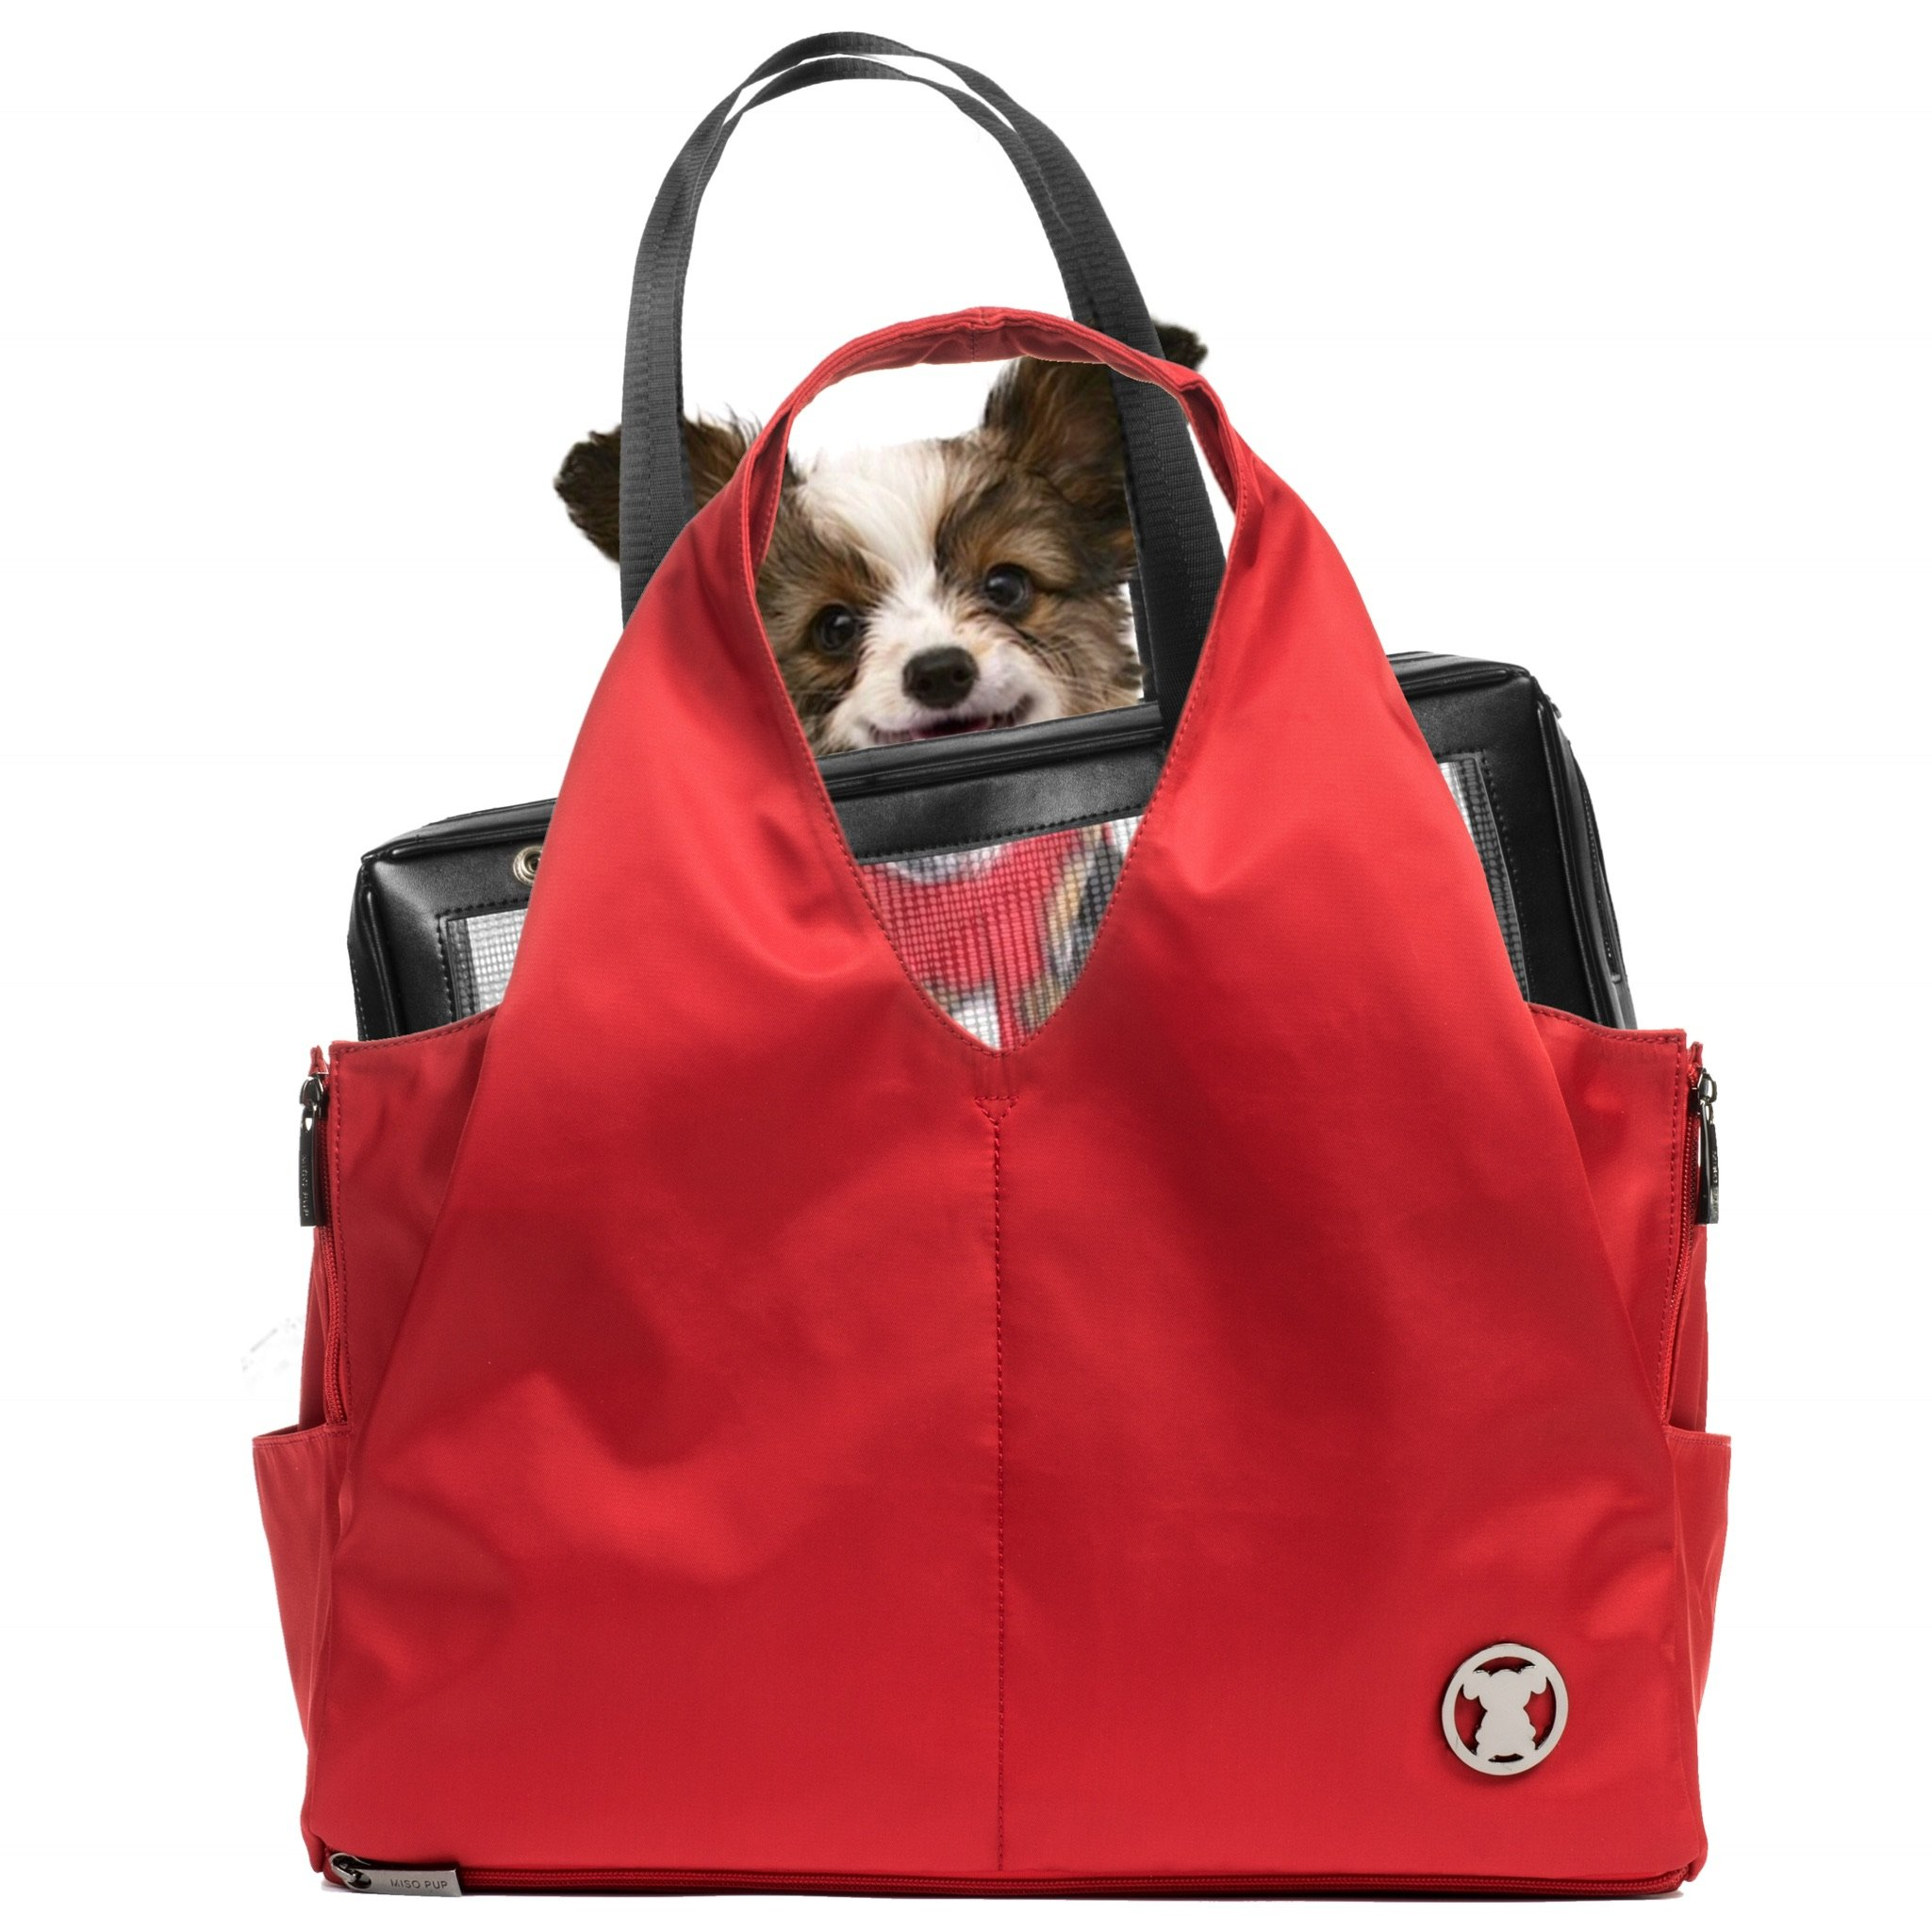 Miso Pup Sporty Red Interchangeable Airline Approved Pet Carrier Combo with Pockets for Small Dogs (Pet Carrier Base & Shell Tote) by Miso Pup